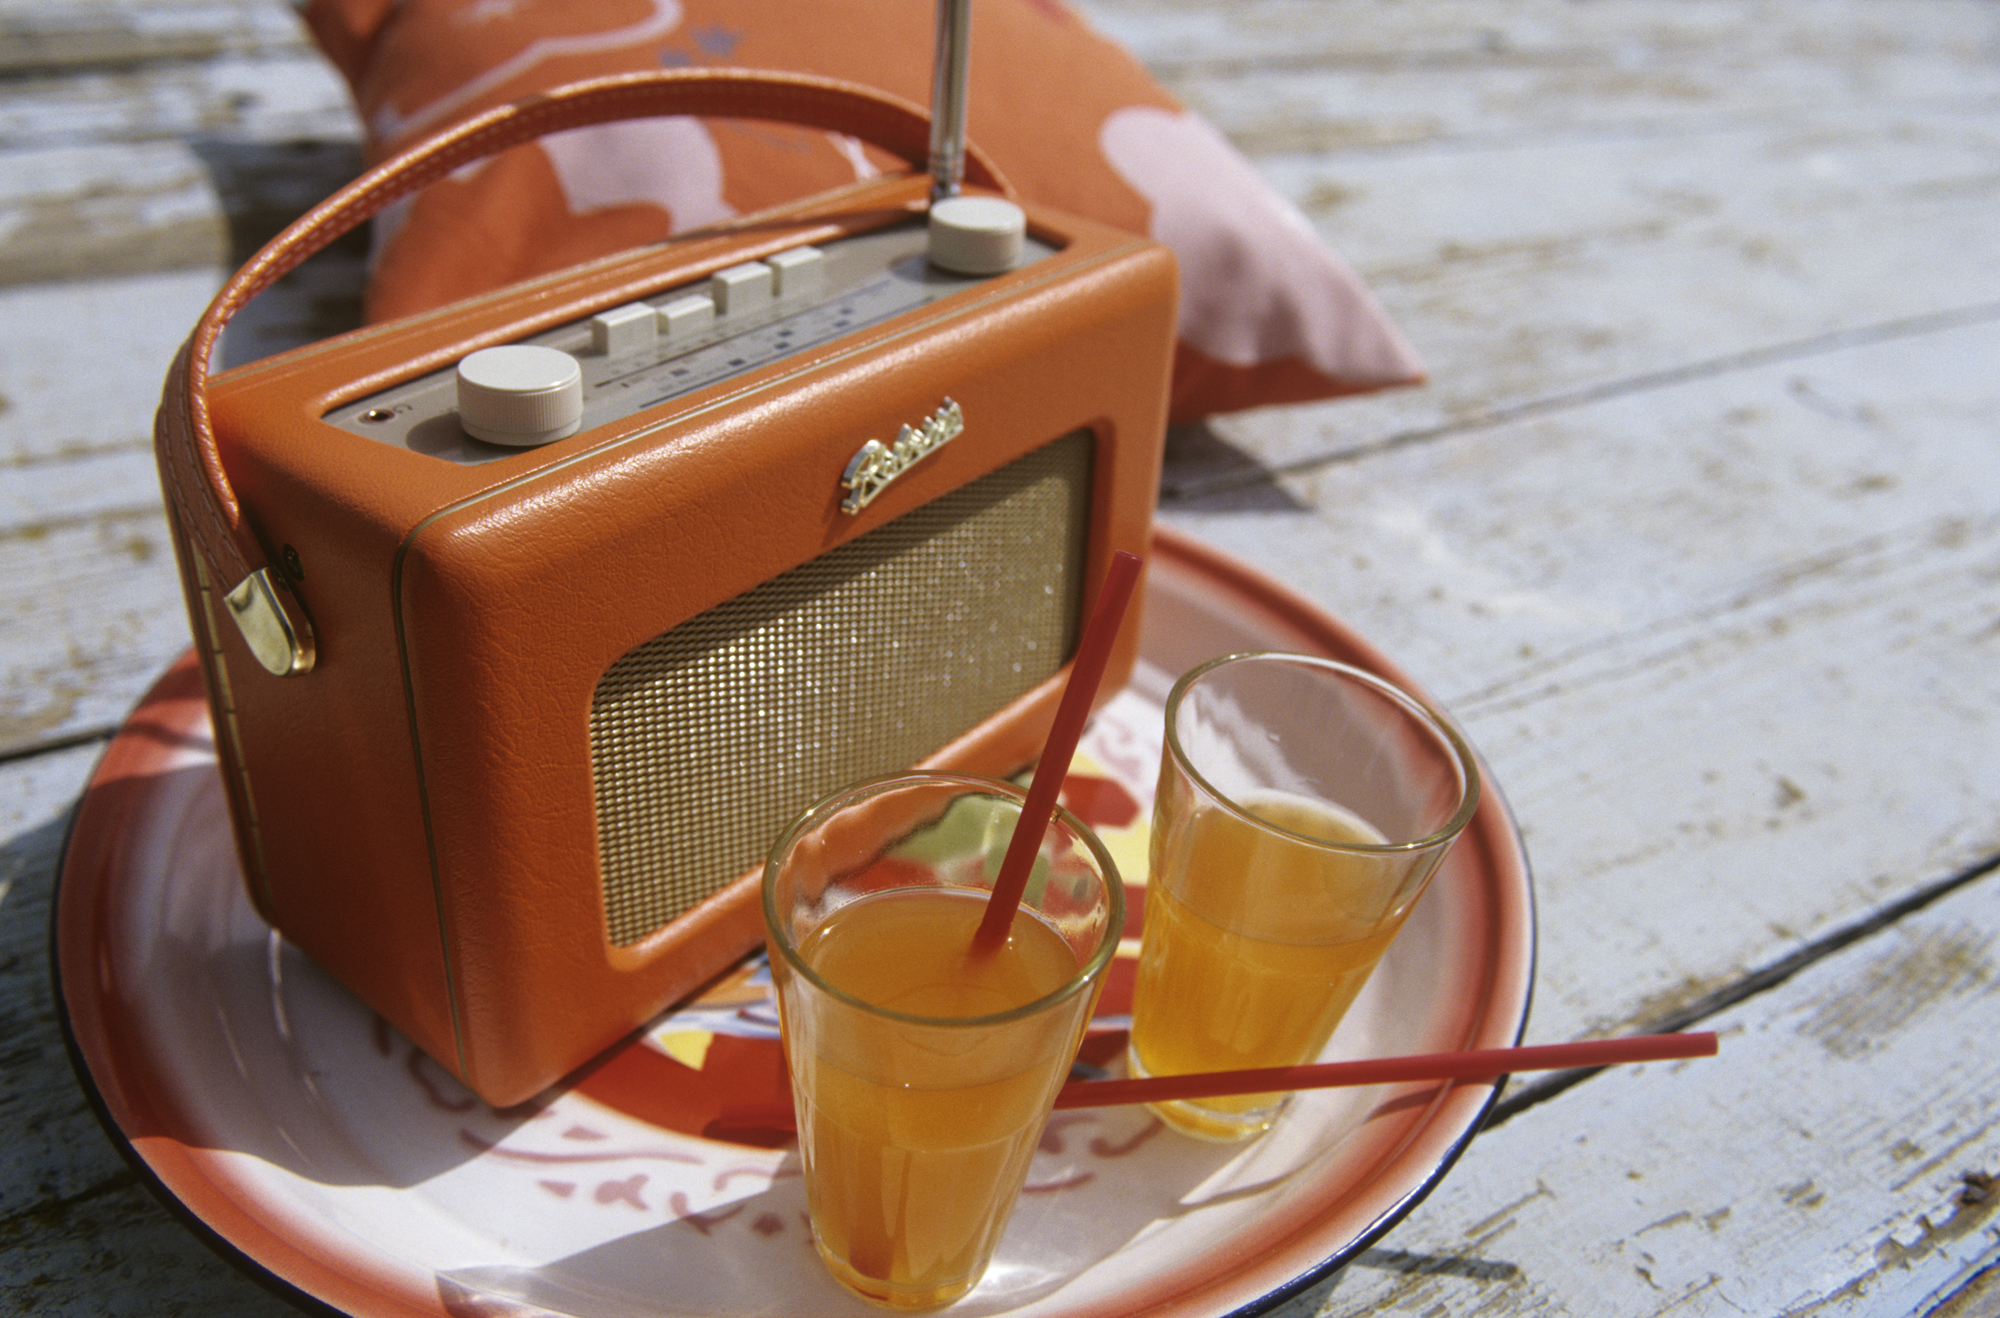 Vintage radio and drinks at outdoor party